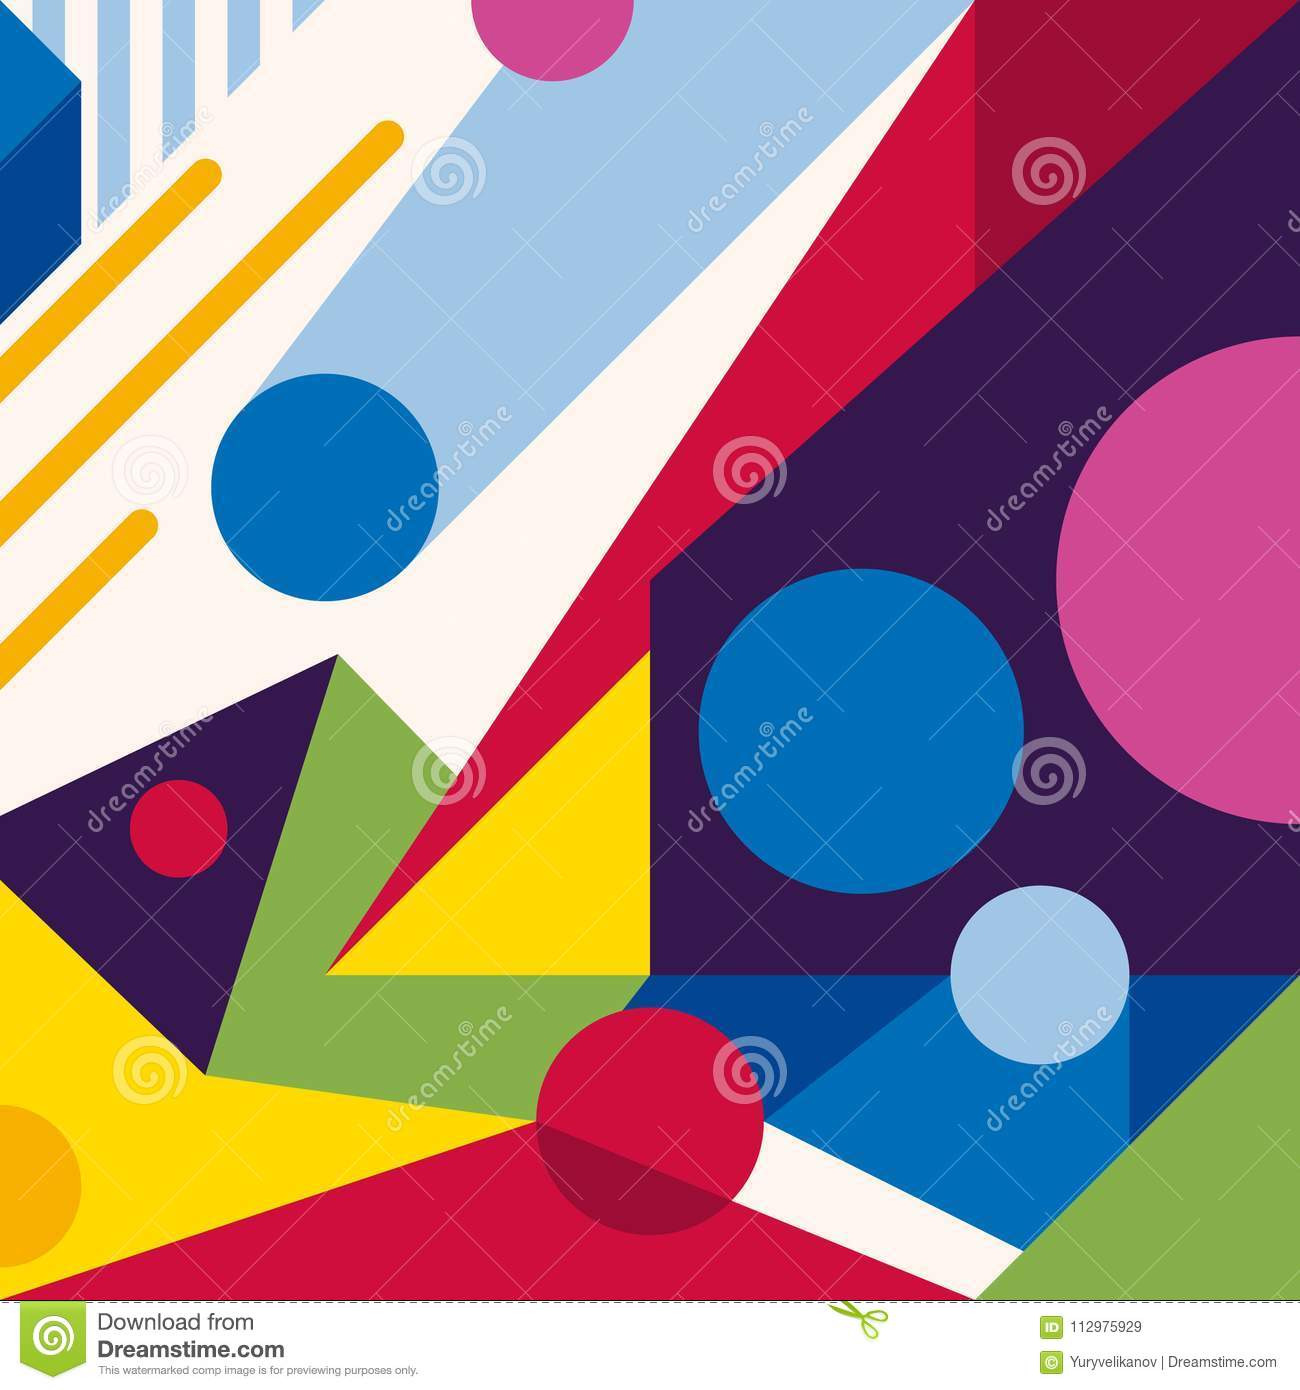 Abstract modern geometric background. Composition 11